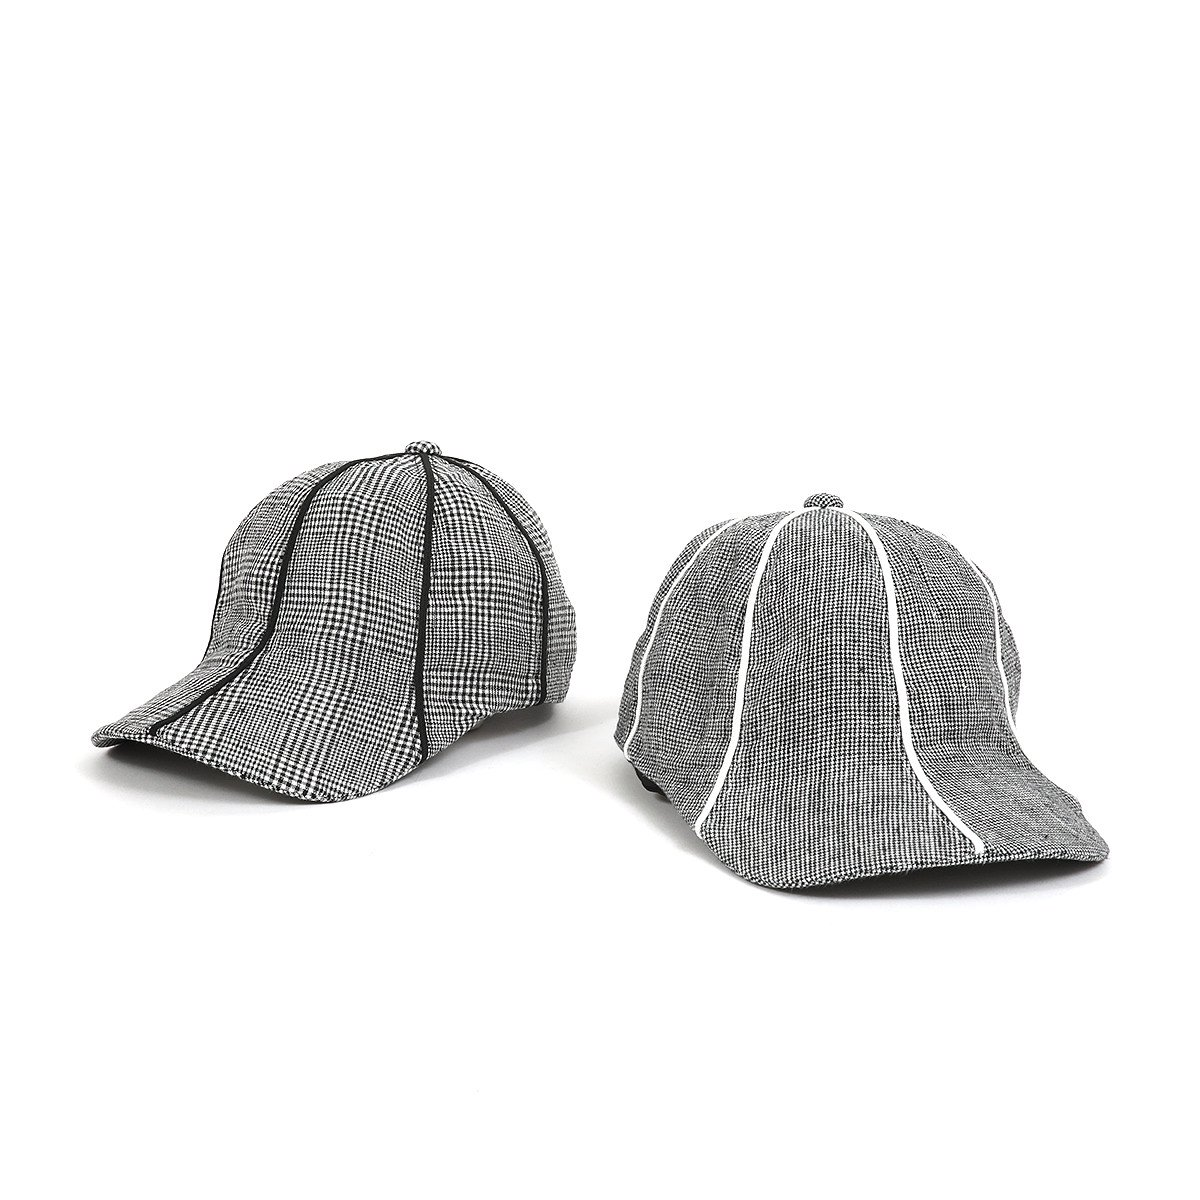 LINEN 8PANEL DRAPING CAP<img class='new_mark_img2' src='https://img.shop-pro.jp/img/new/icons38.gif' style='border:none;display:inline;margin:0px;padding:0px;width:auto;' />